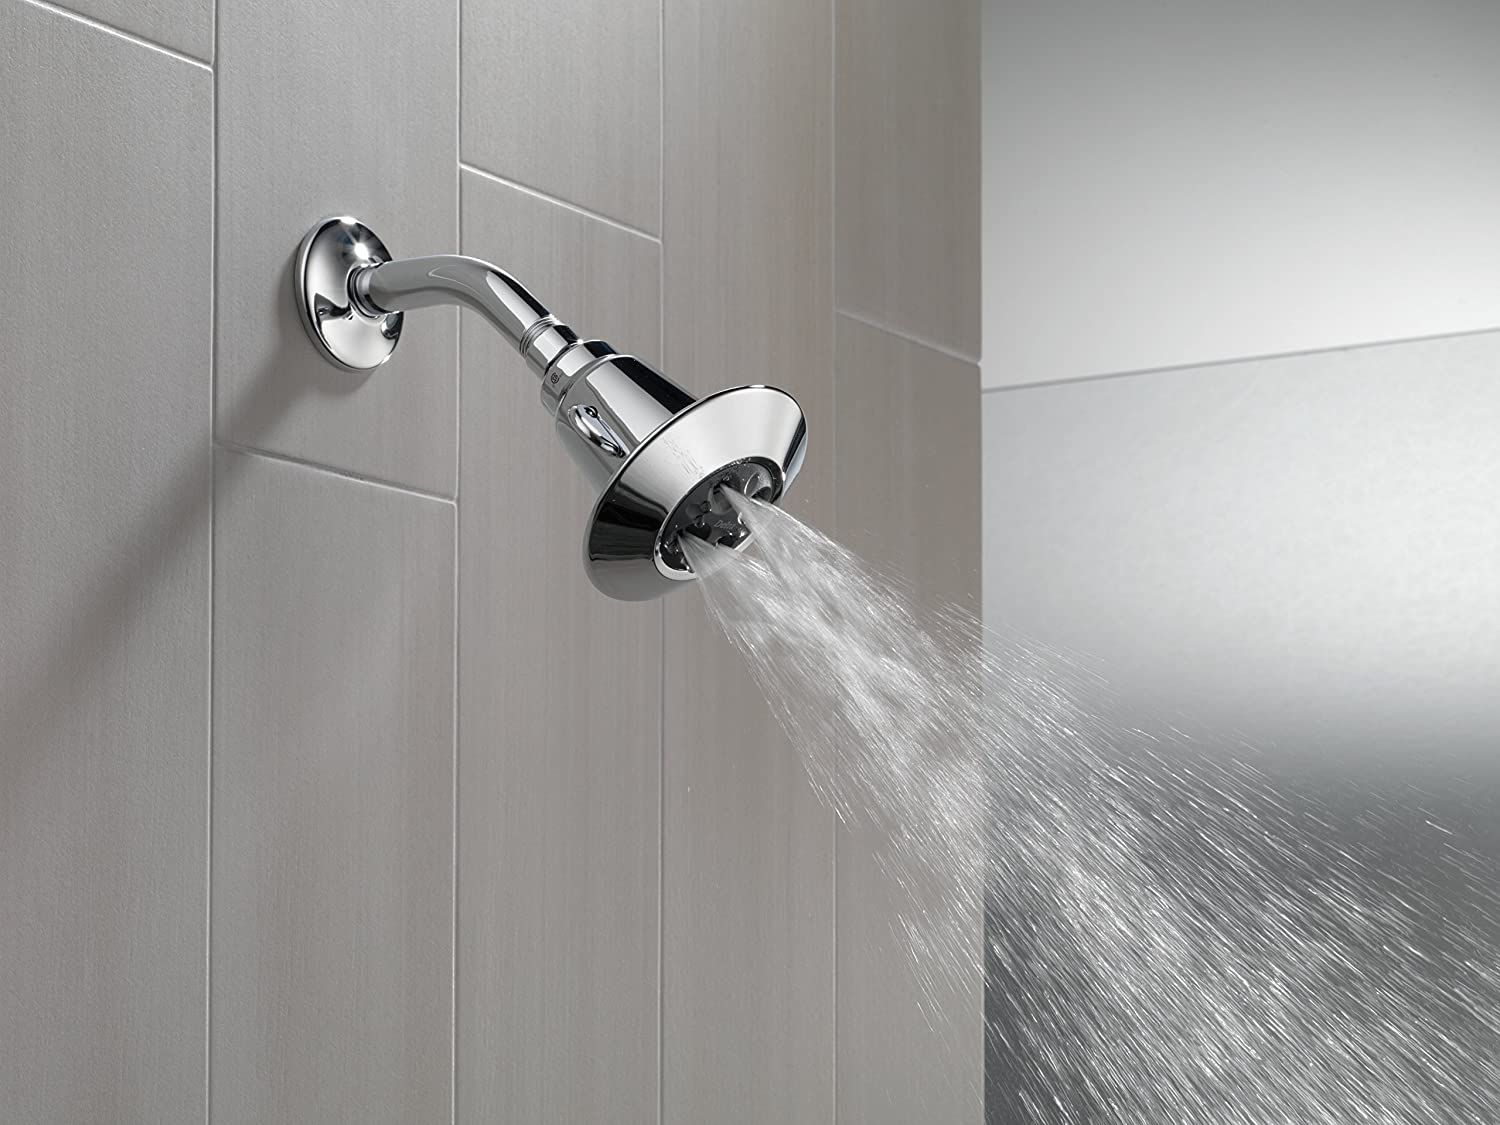 Delta Faucet 75152 Water Showerhead with Chrome H2OKINETIC Technology